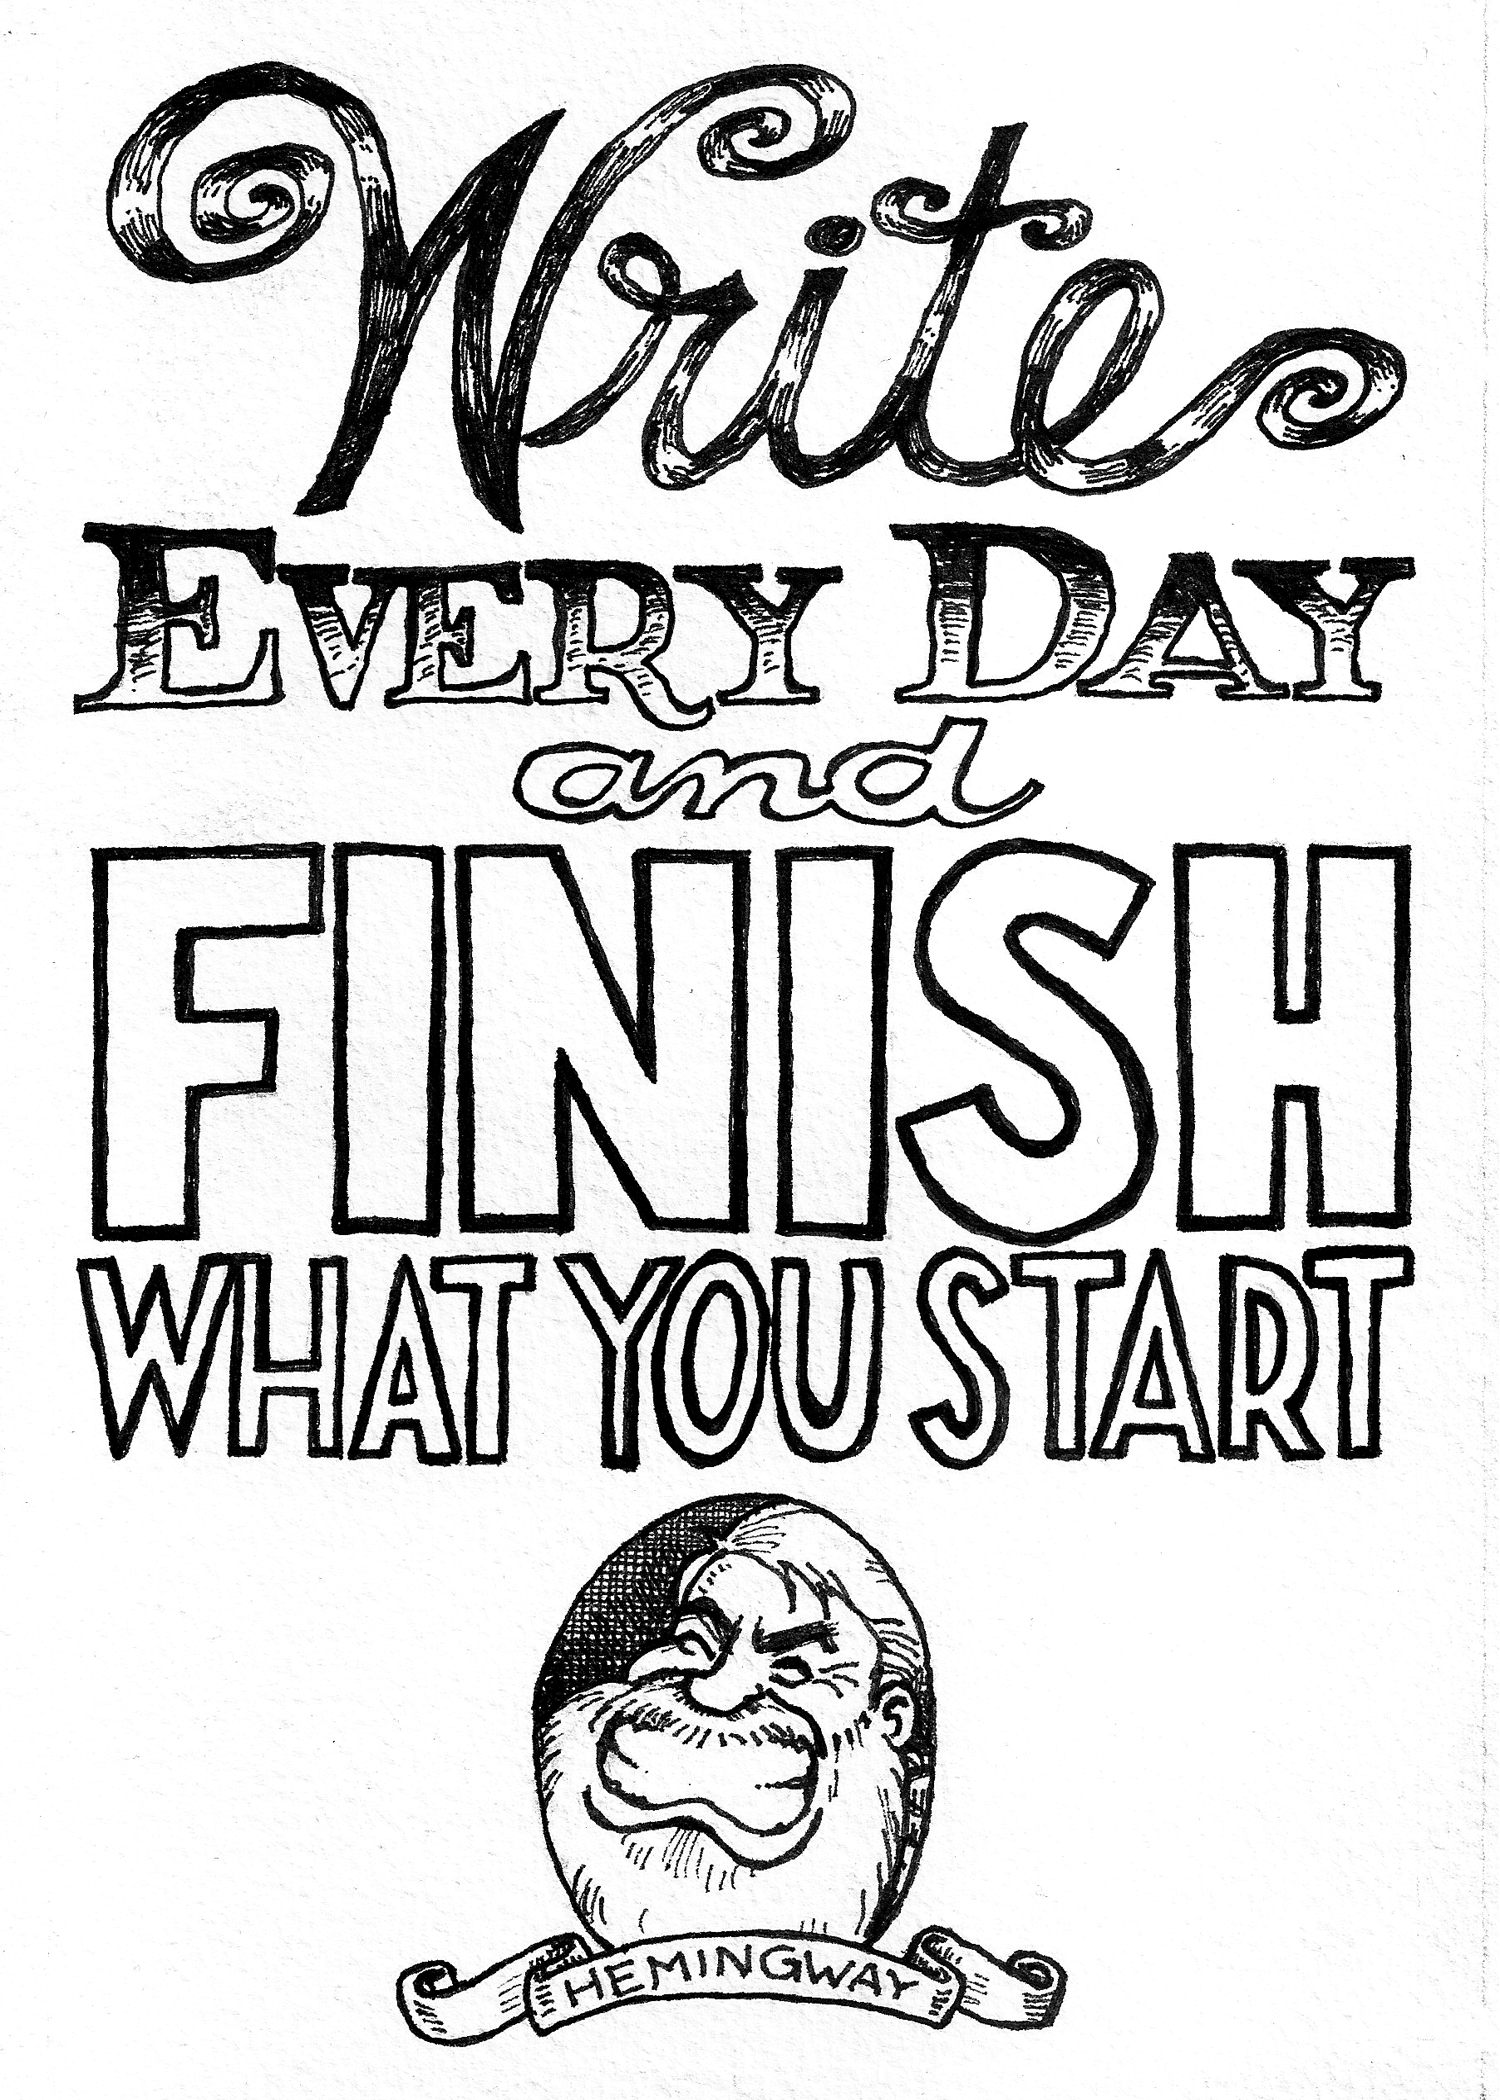 """FINISH WHAT YOU START,"" said Hemingway, blunt and true"